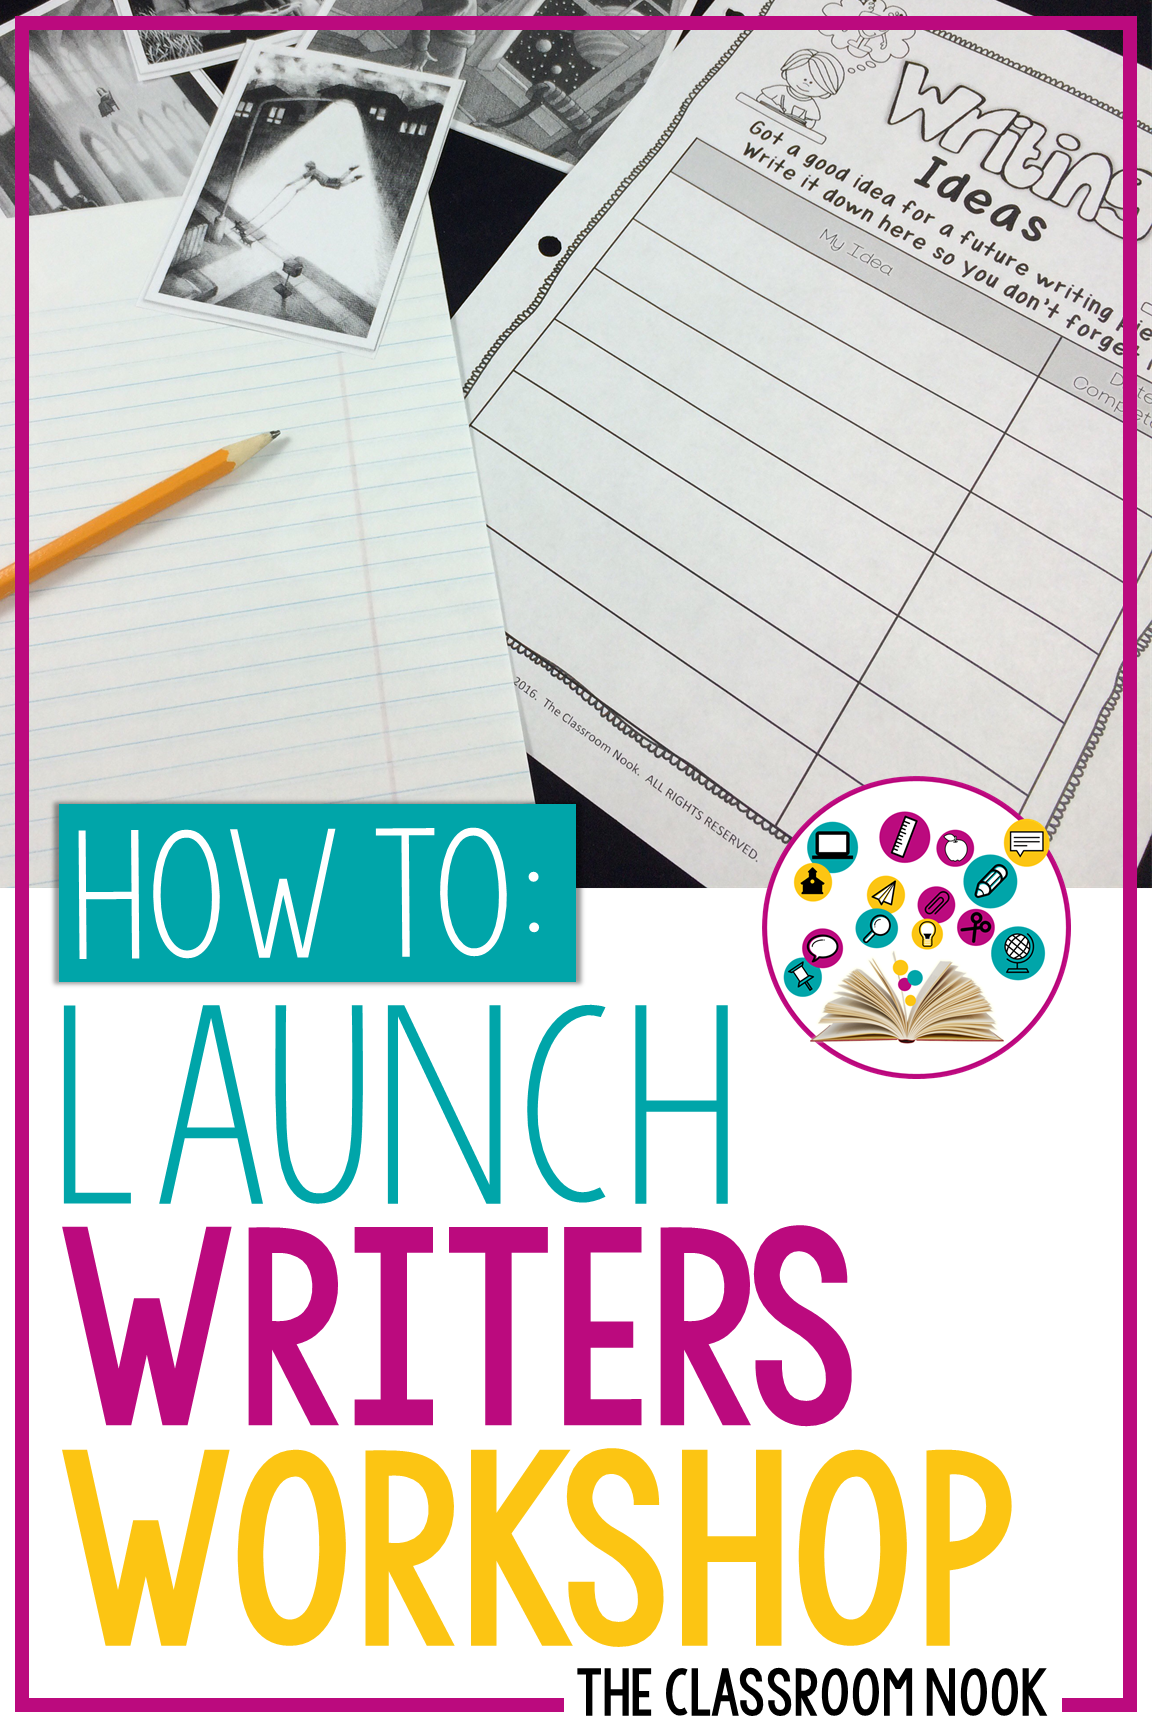 Not sure exactly how to get your writers workshop set up in your elementary classroom? This post walks you step-by-step on how to get started with implementing the workshop model with your students during your writing block. From what to teach in your writing mini-lessons to what to do during independent writing conferences and more! #writersworkshop #writing #backtoschool